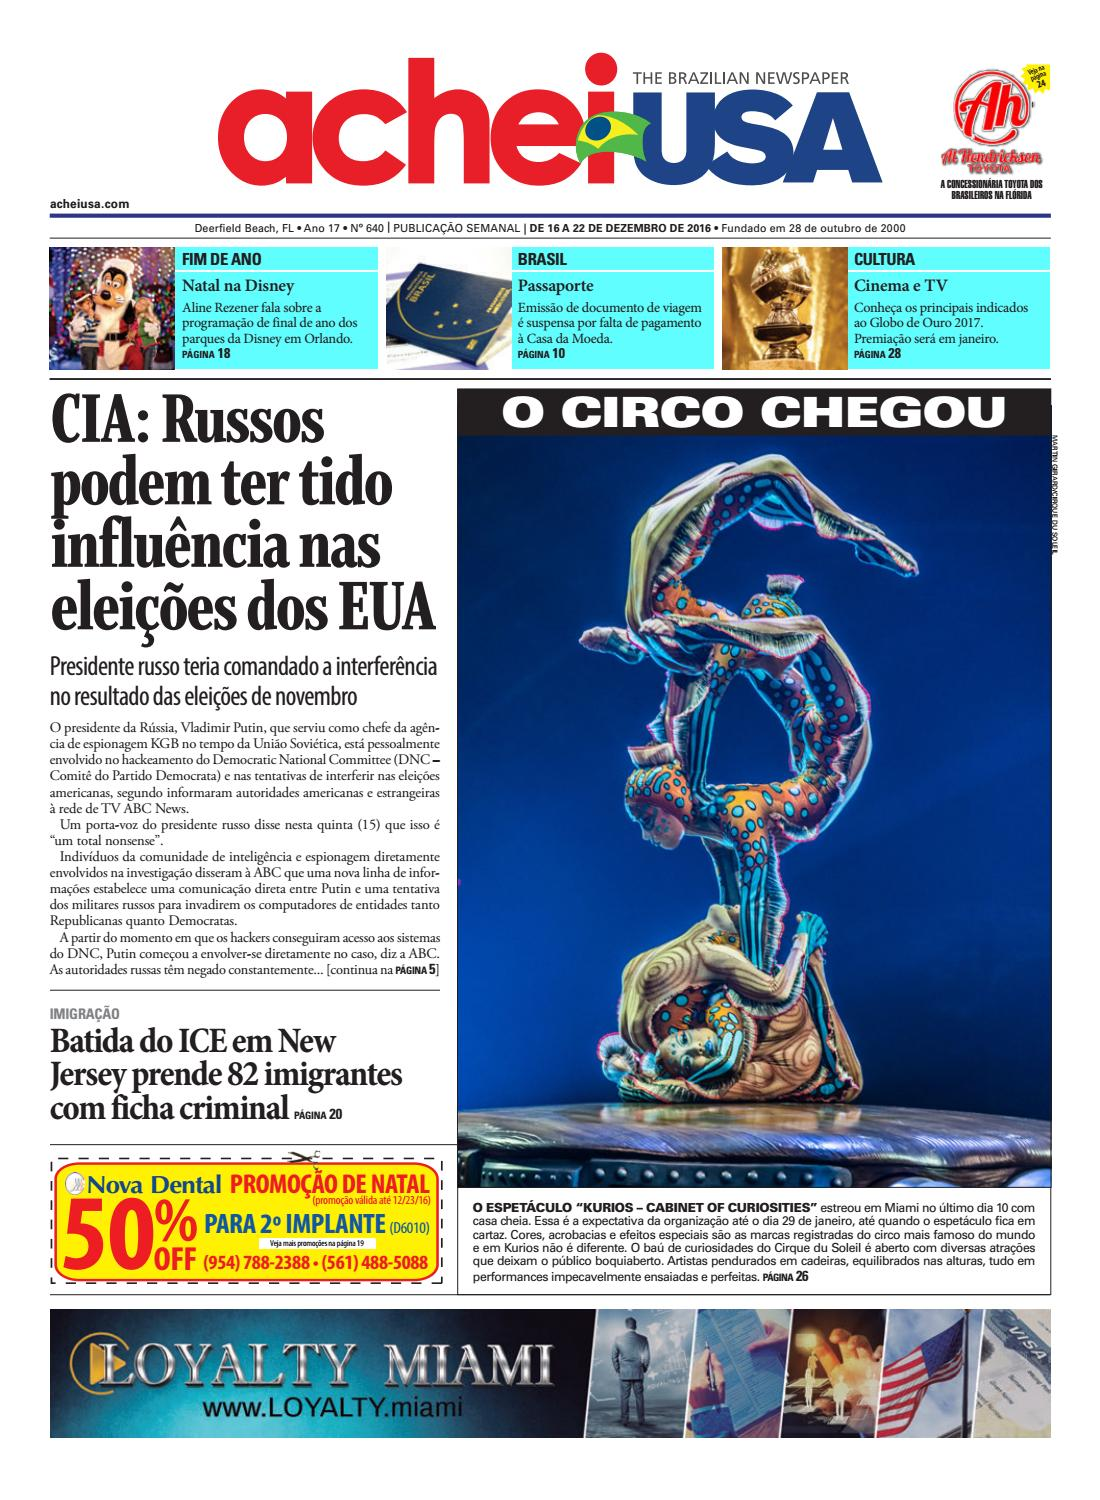 AcheiUSA 640 by AcheiUSA Newspaper - issuu 5853ced80d